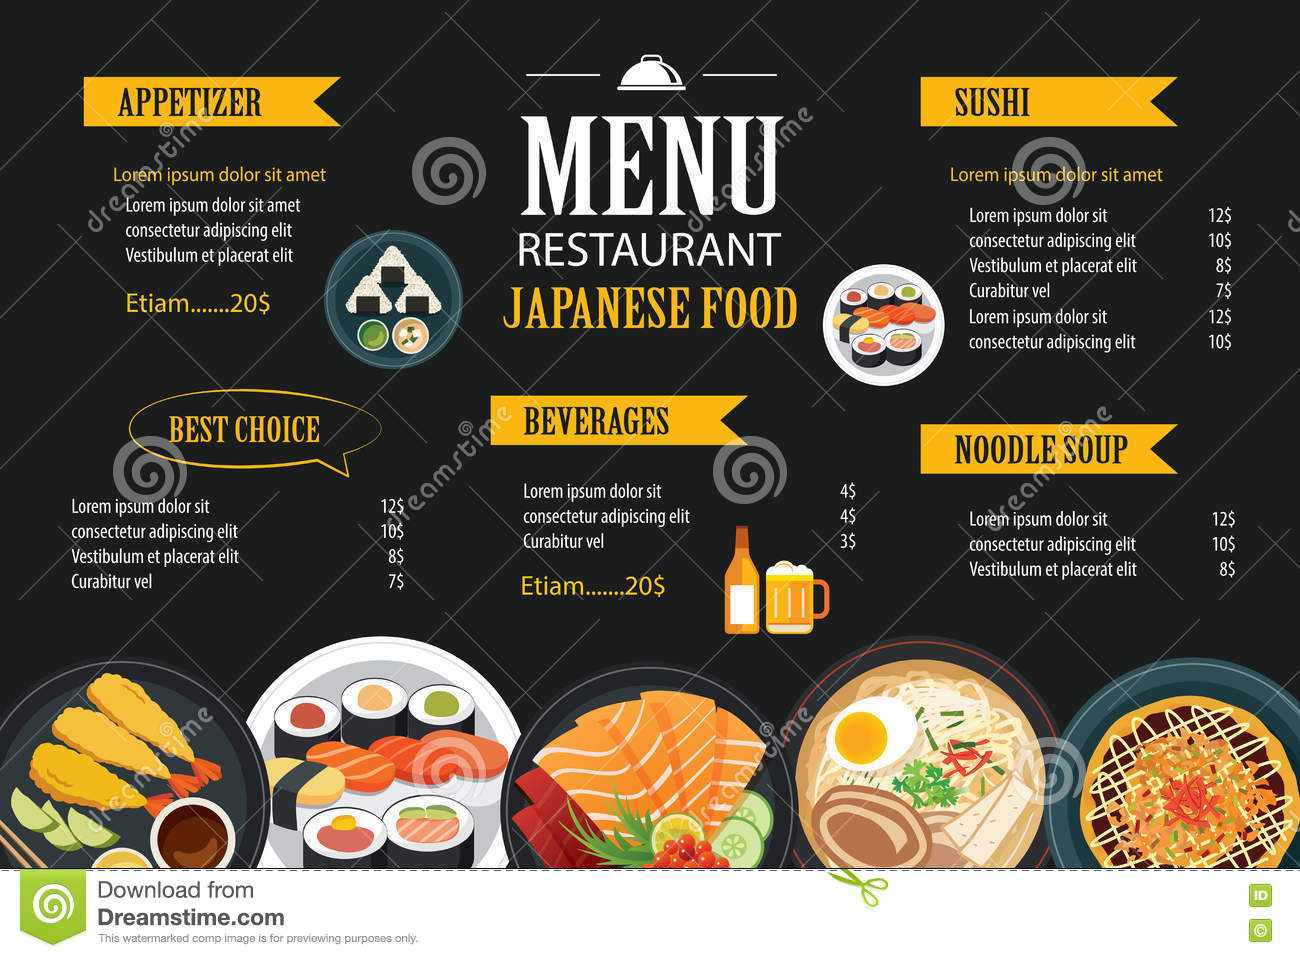 Animated Fish Wallpaper Hd Japanese Food Menu Restaurant Brochure Design Template